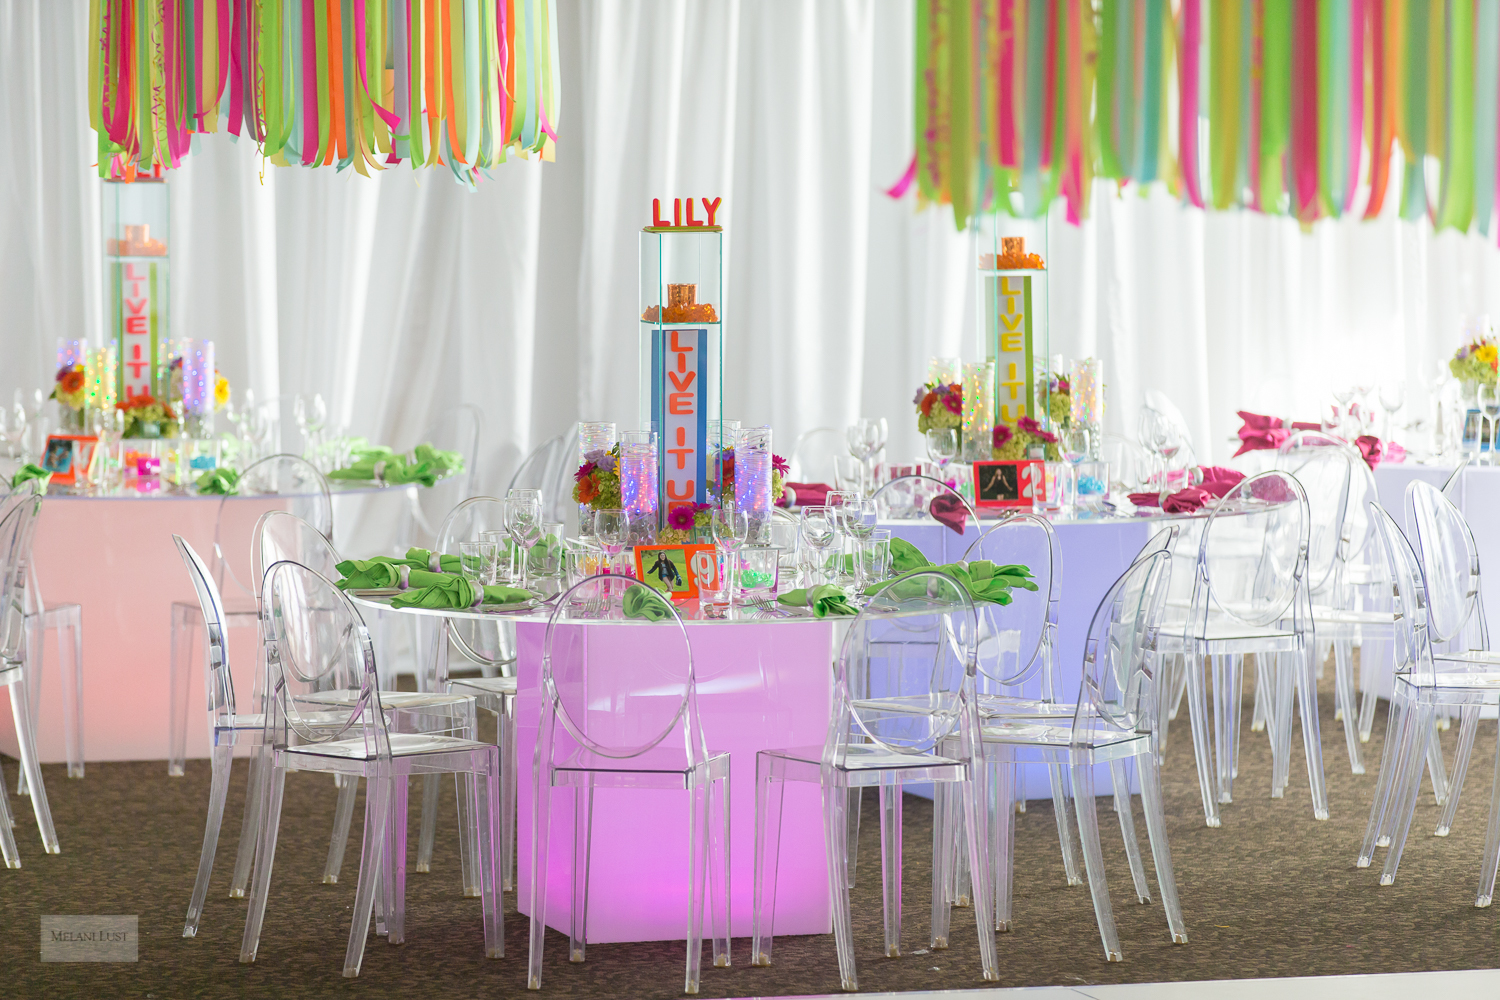 'Live It Up' with Lily Bat Mitzvah - Ruth Ridgeway Designs